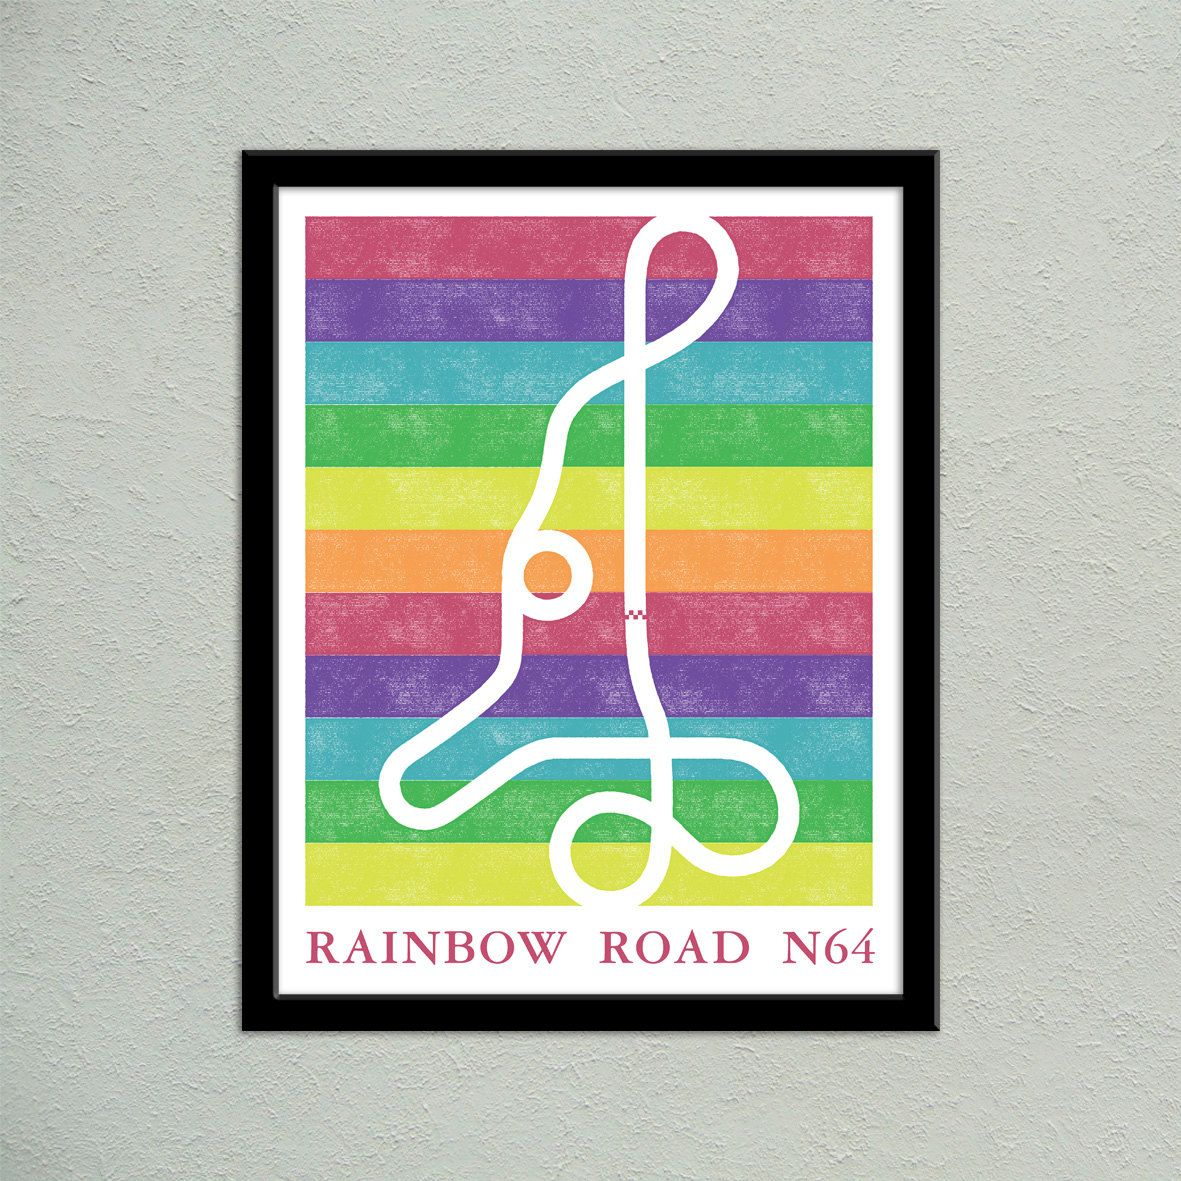 Mario kart 64 rainbow road track map poster super mario kart map mario kart 64 rainbow road track map poster super mario kart map print video game world map art geeky christmas gift video game art mario kart 64 gumiabroncs Image collections